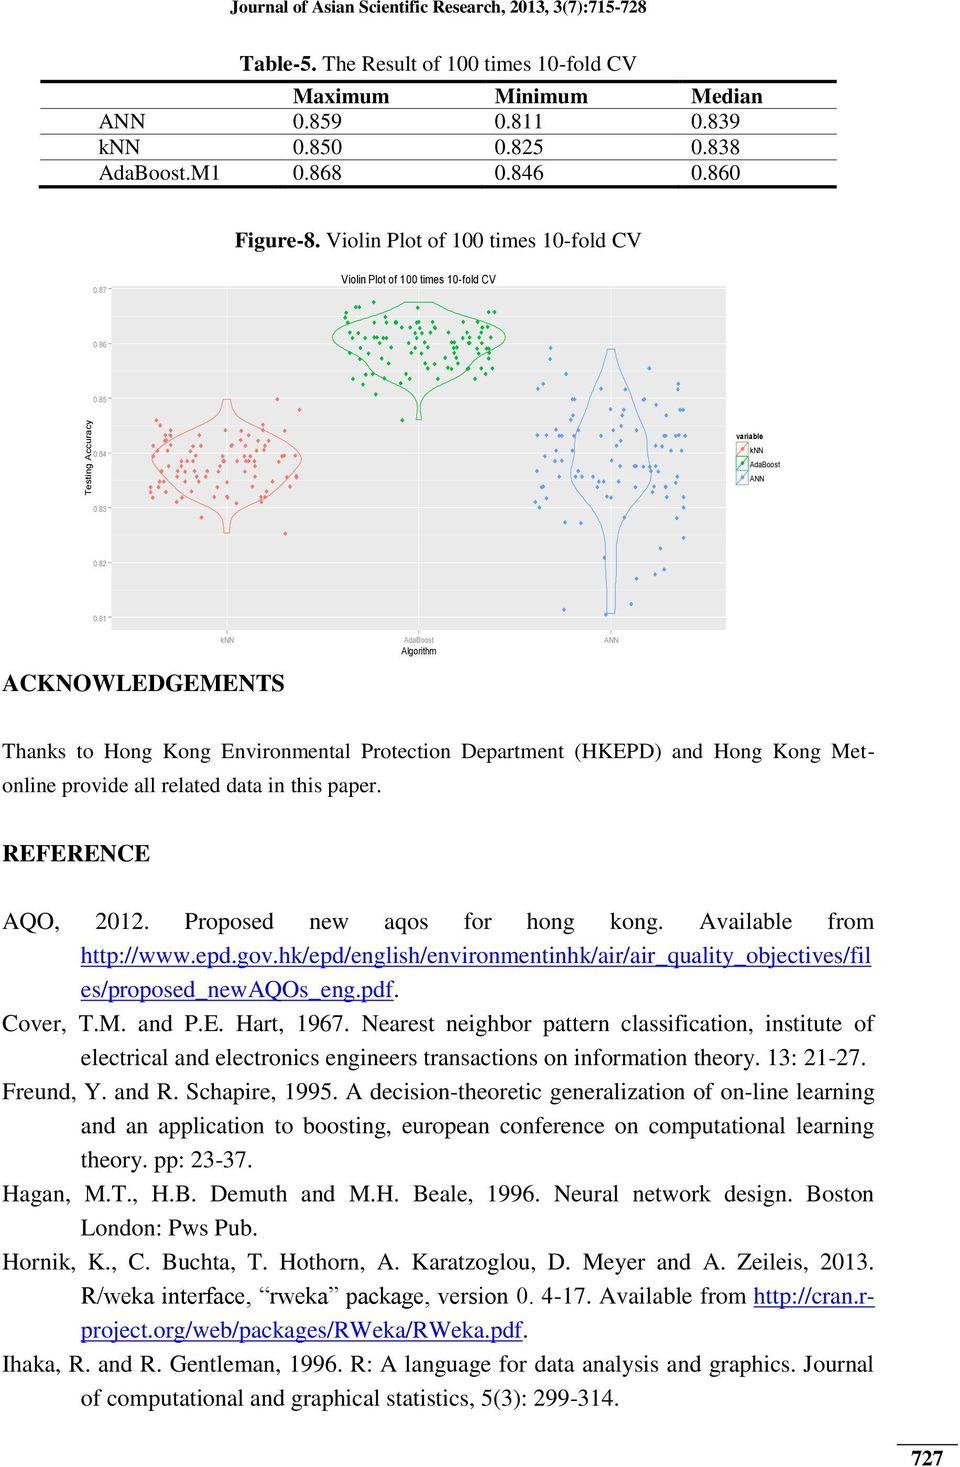 Hong Kong Metonline provide all related data in this paper REFERENCE AQO, 2012 Proposed new aqos for hong kong Available from